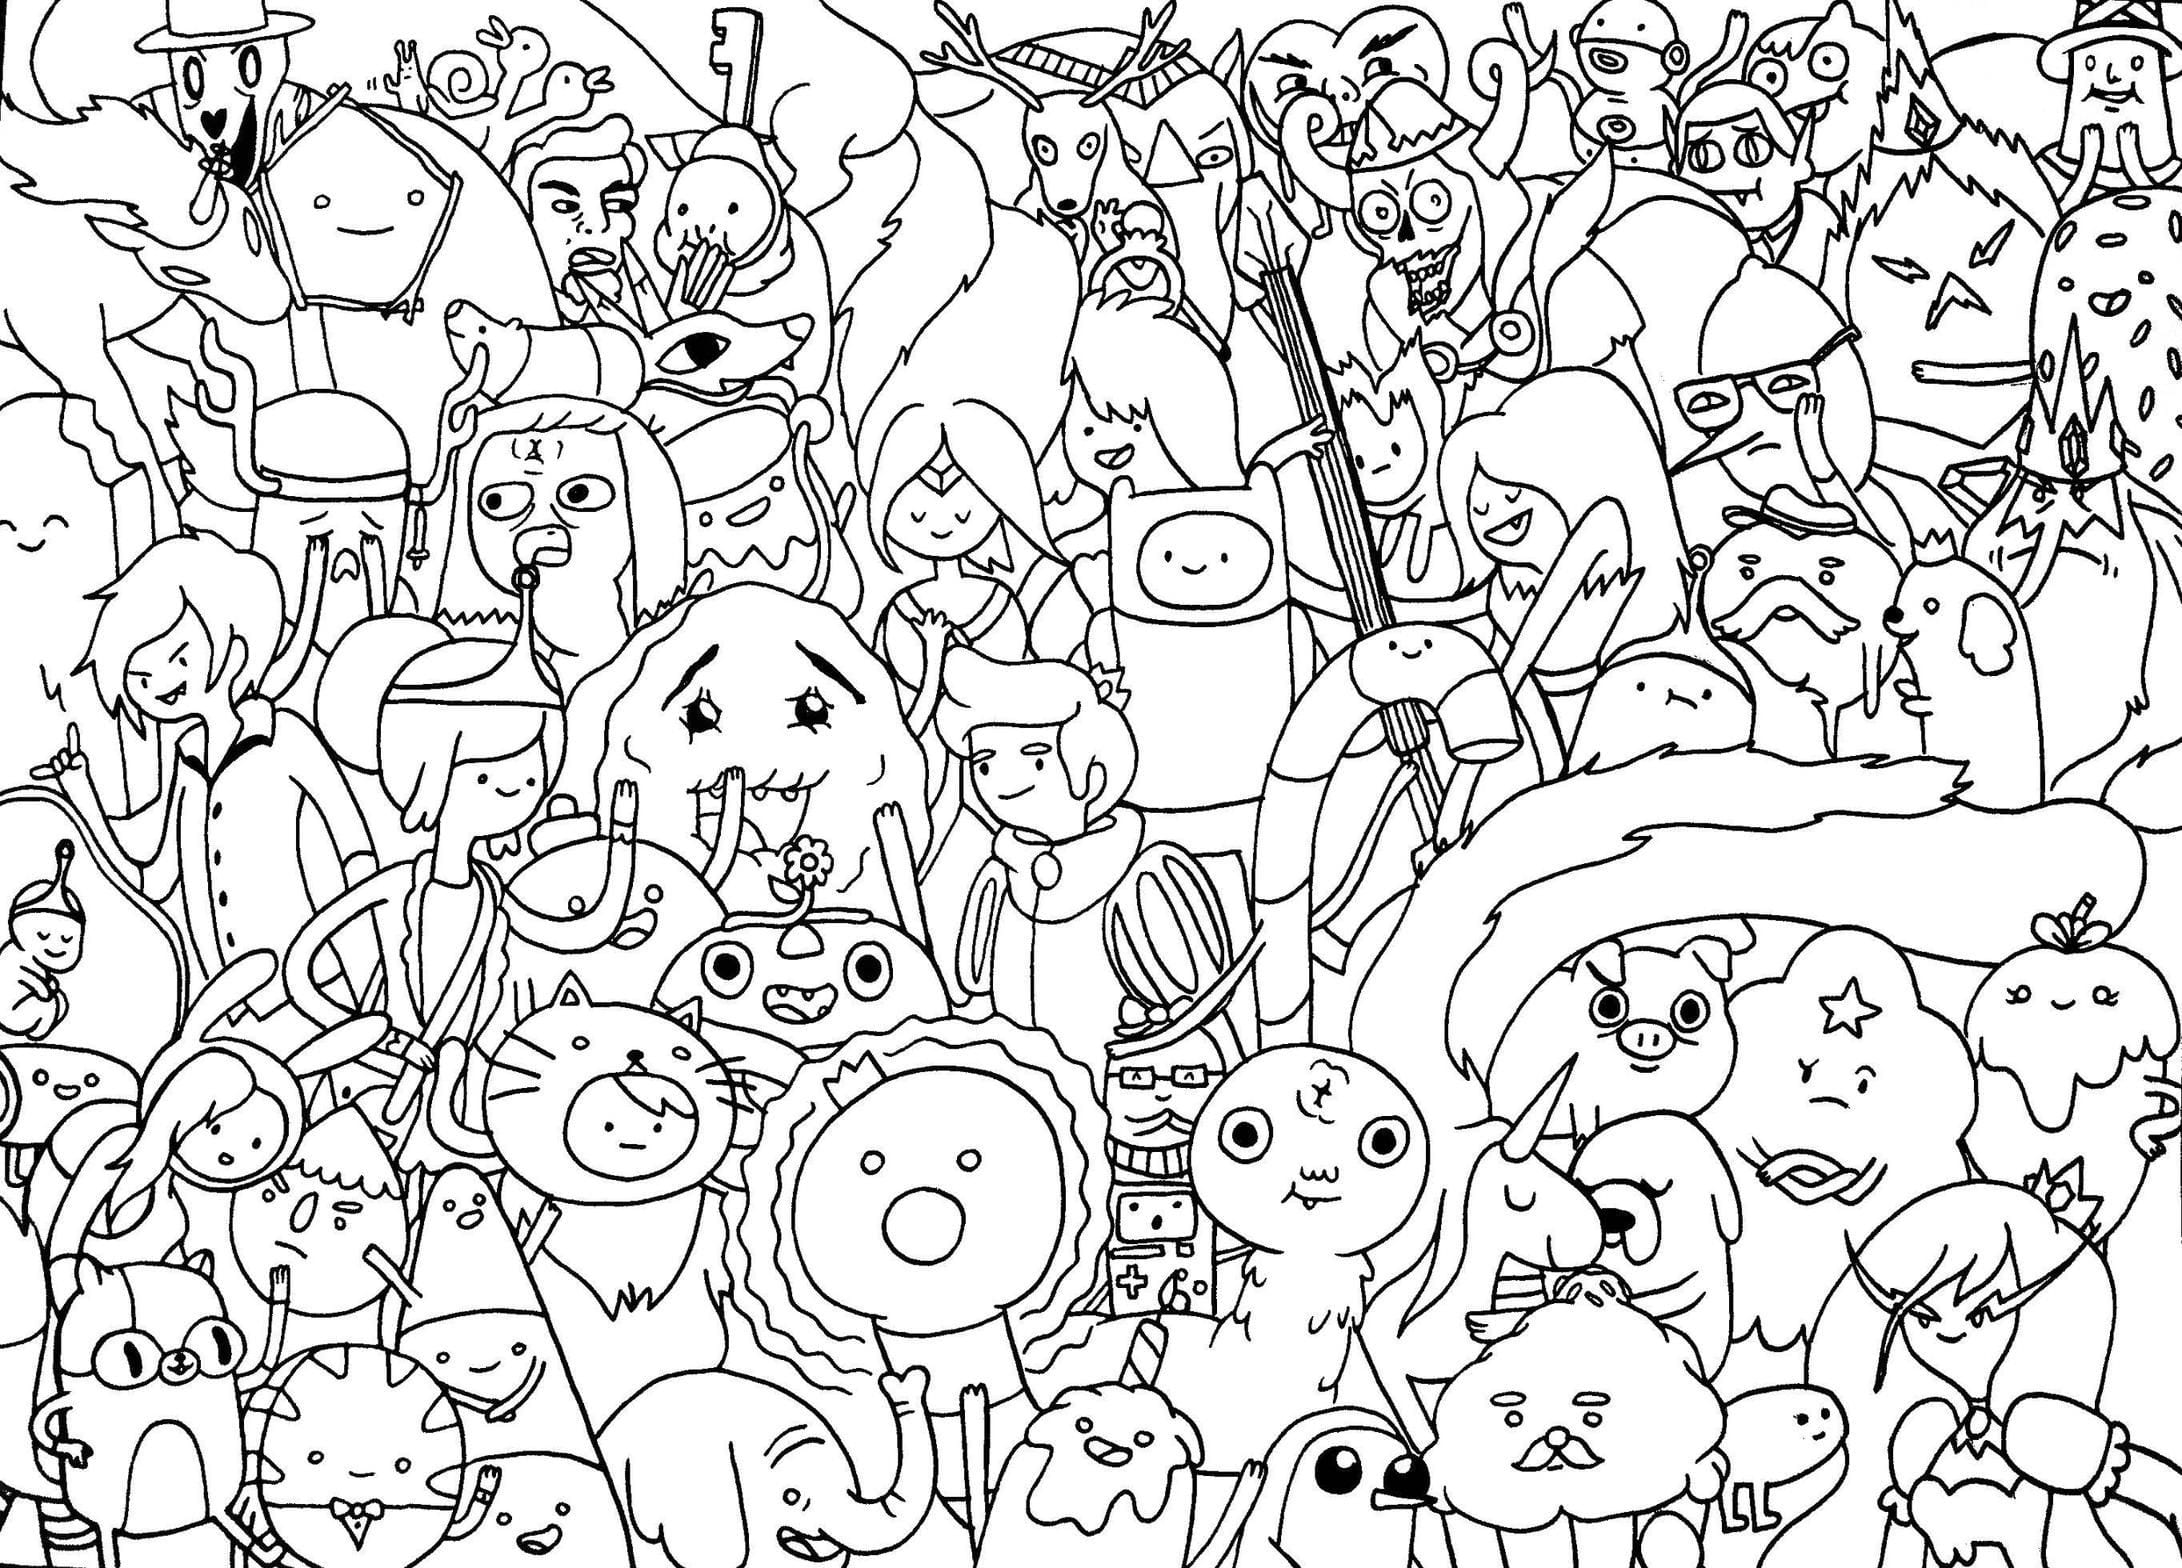 On Adventure Time Coloring Pages